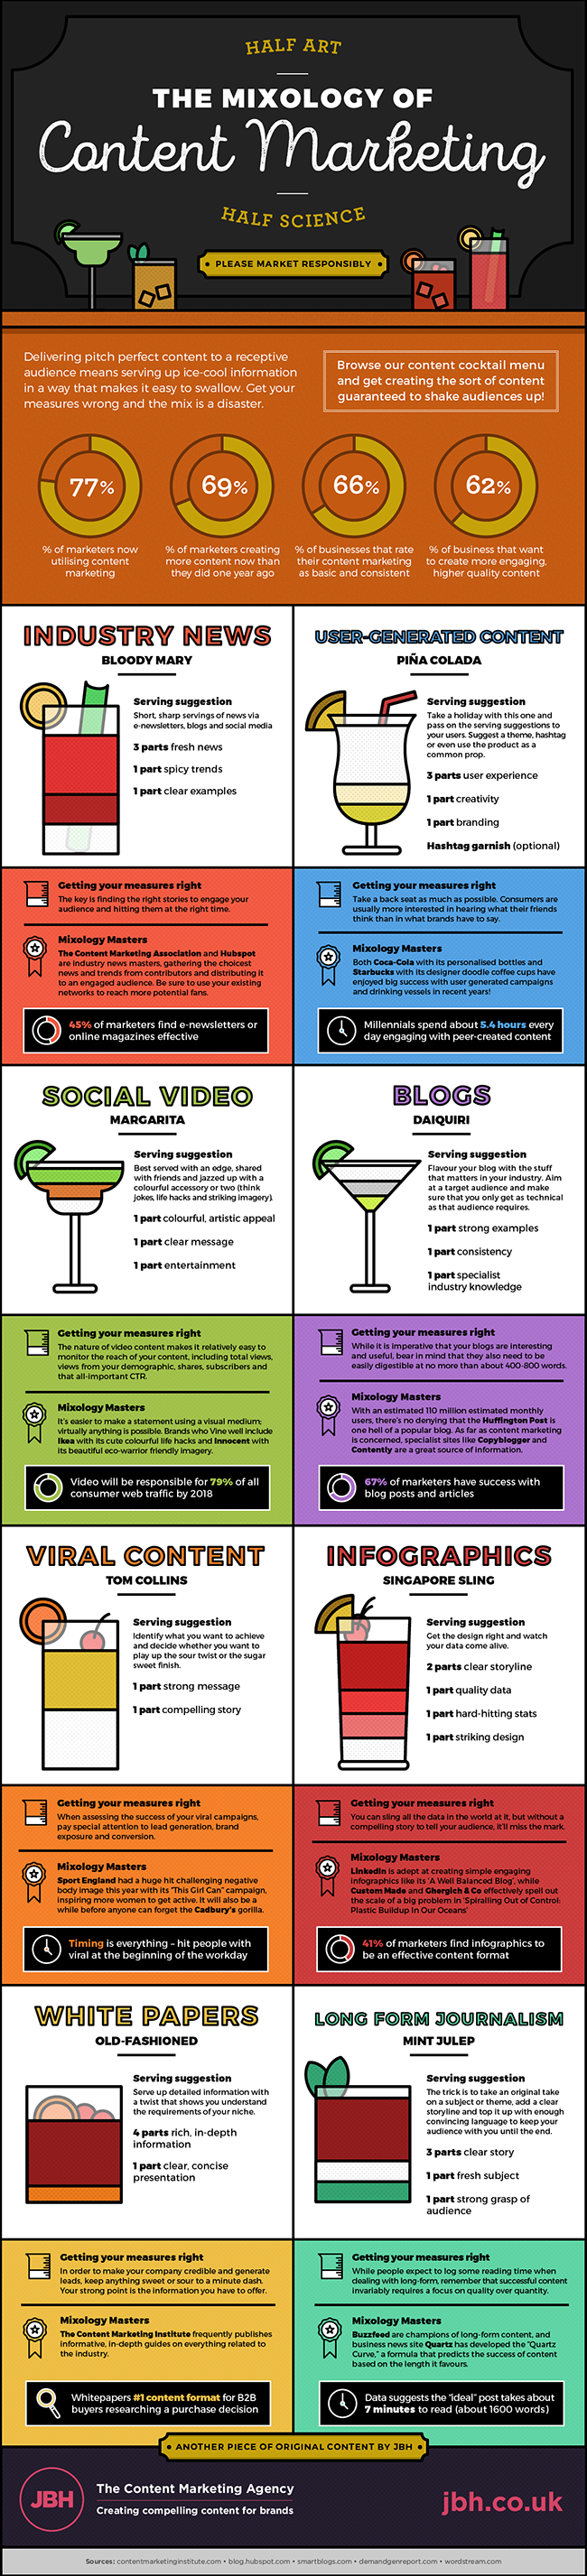 Infographic | The Mixology of Content Marketing